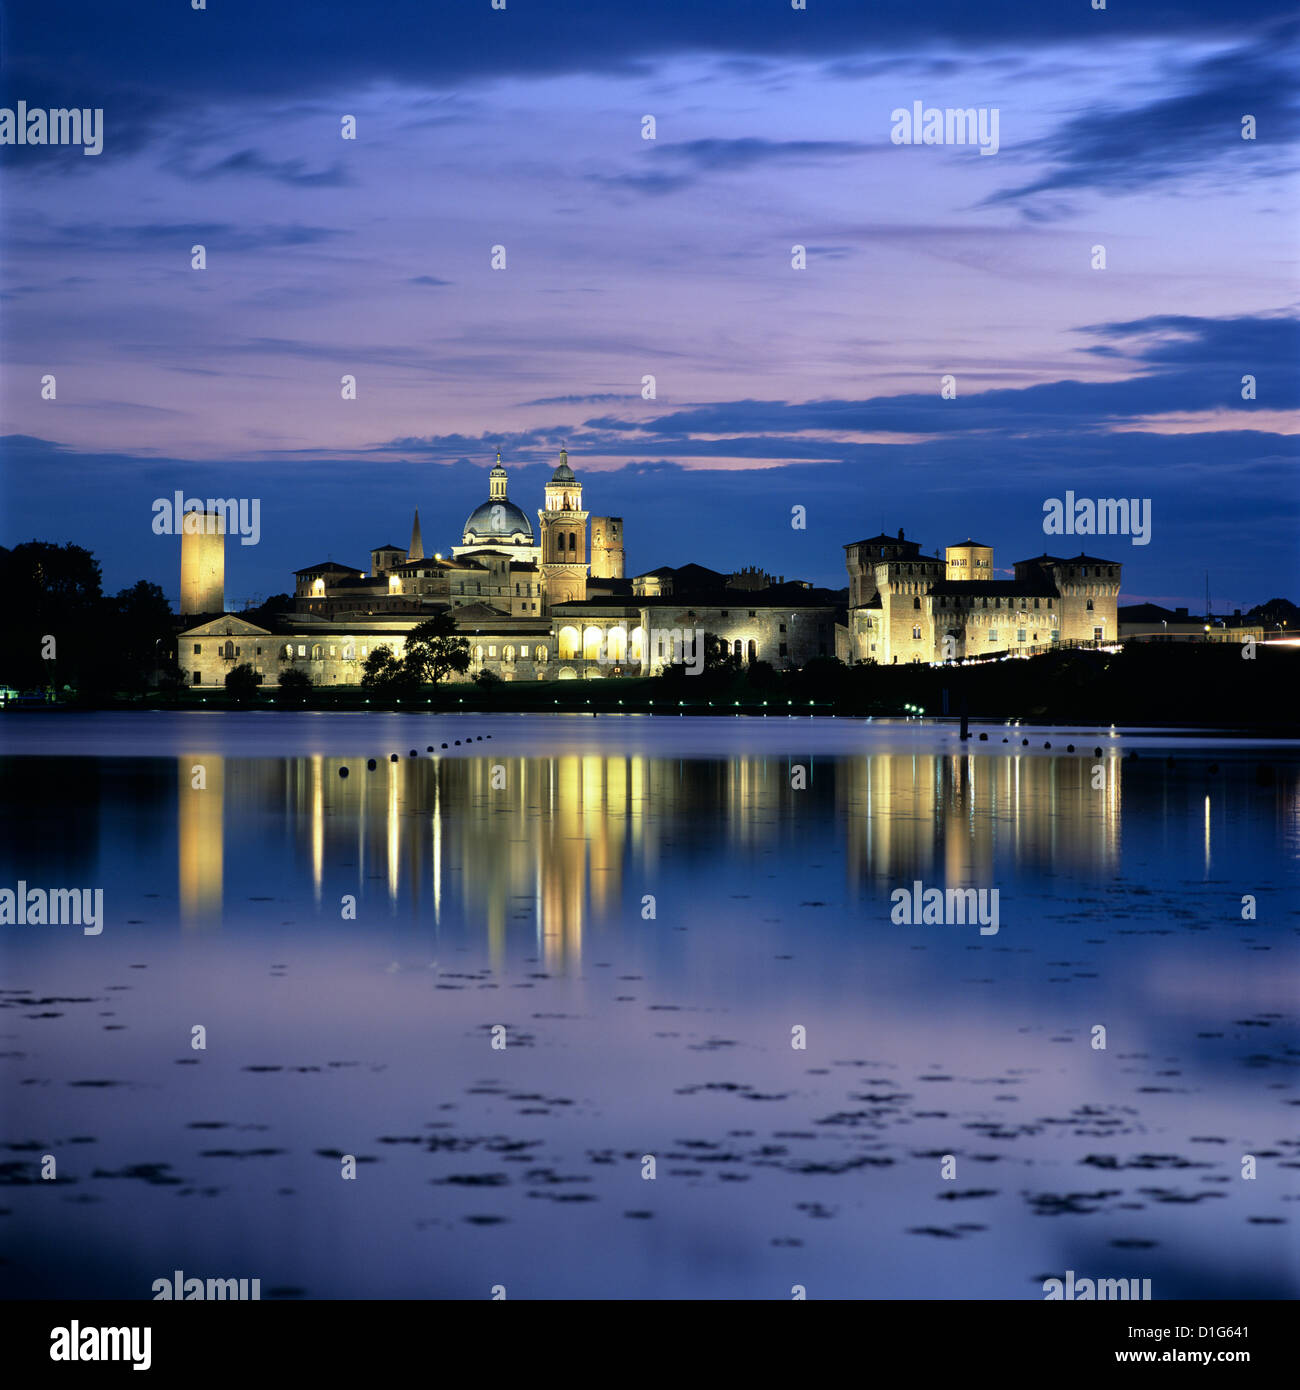 Dusk over the old town and Lake Inferiore, Mantua, Lombardy, Italy, Europe Stock Photo